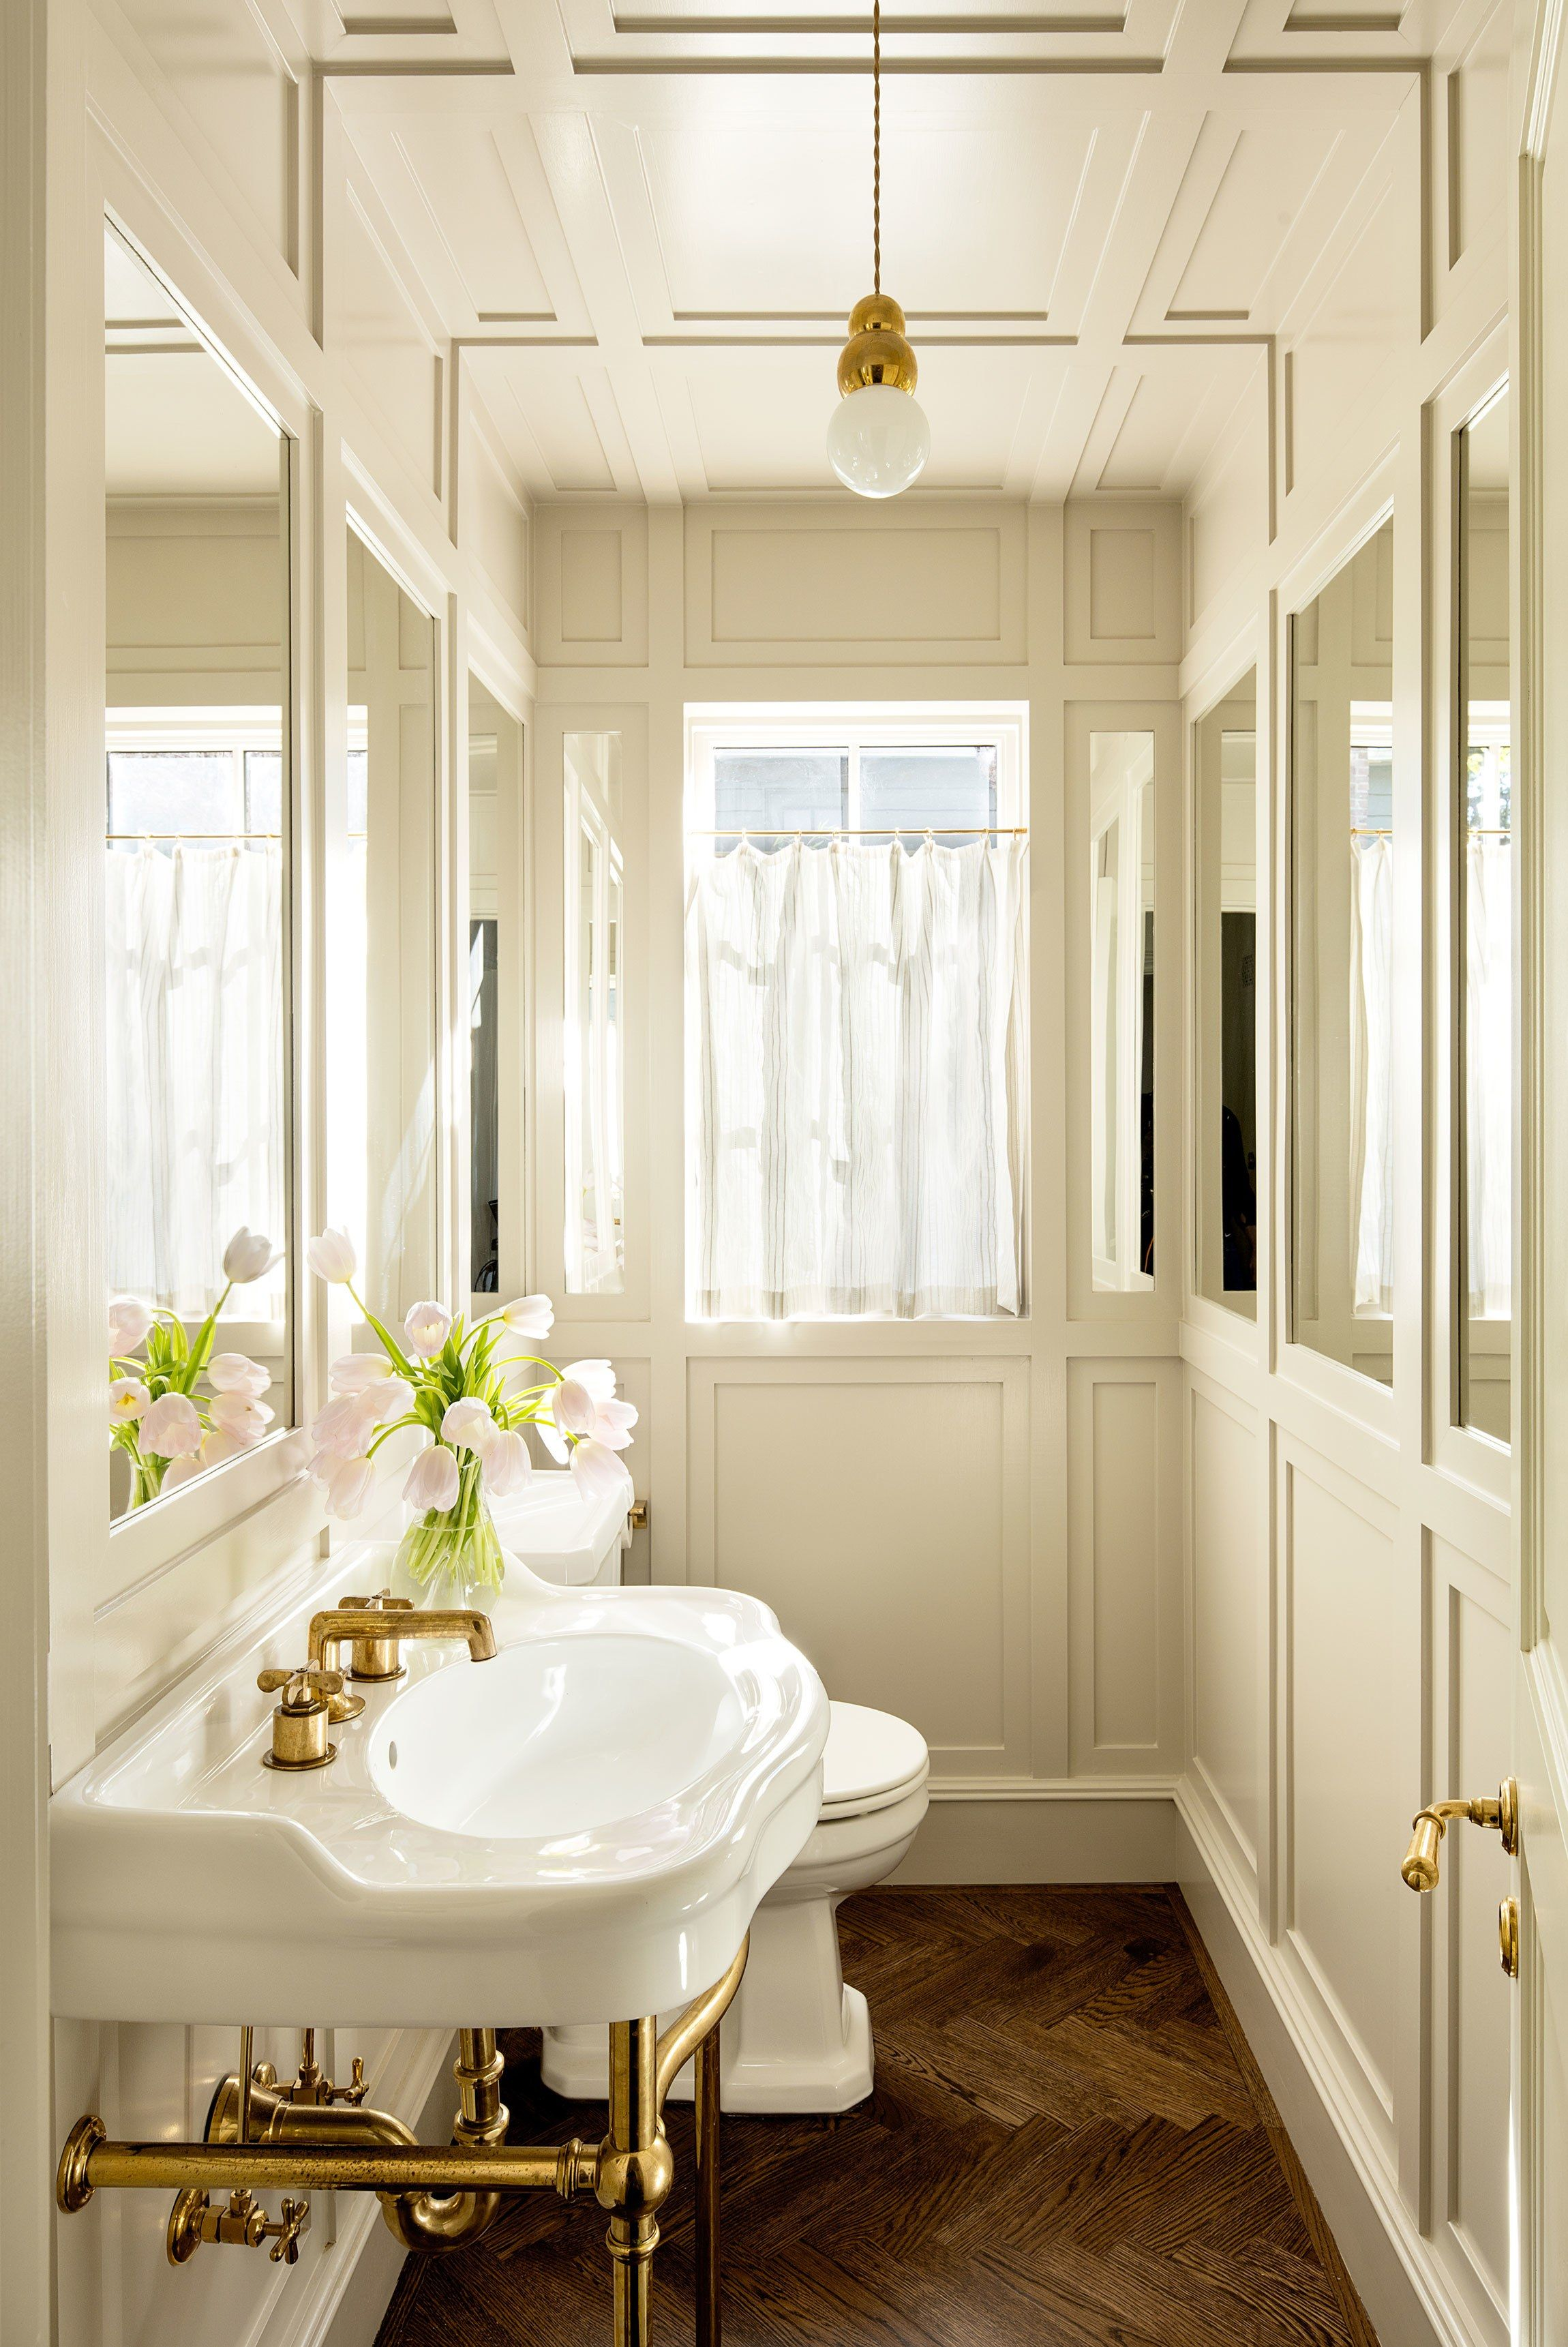 A 1920s House With Modern Twist In Portland Oregon Photos Architectural Digest Powder Room Alexmoulding